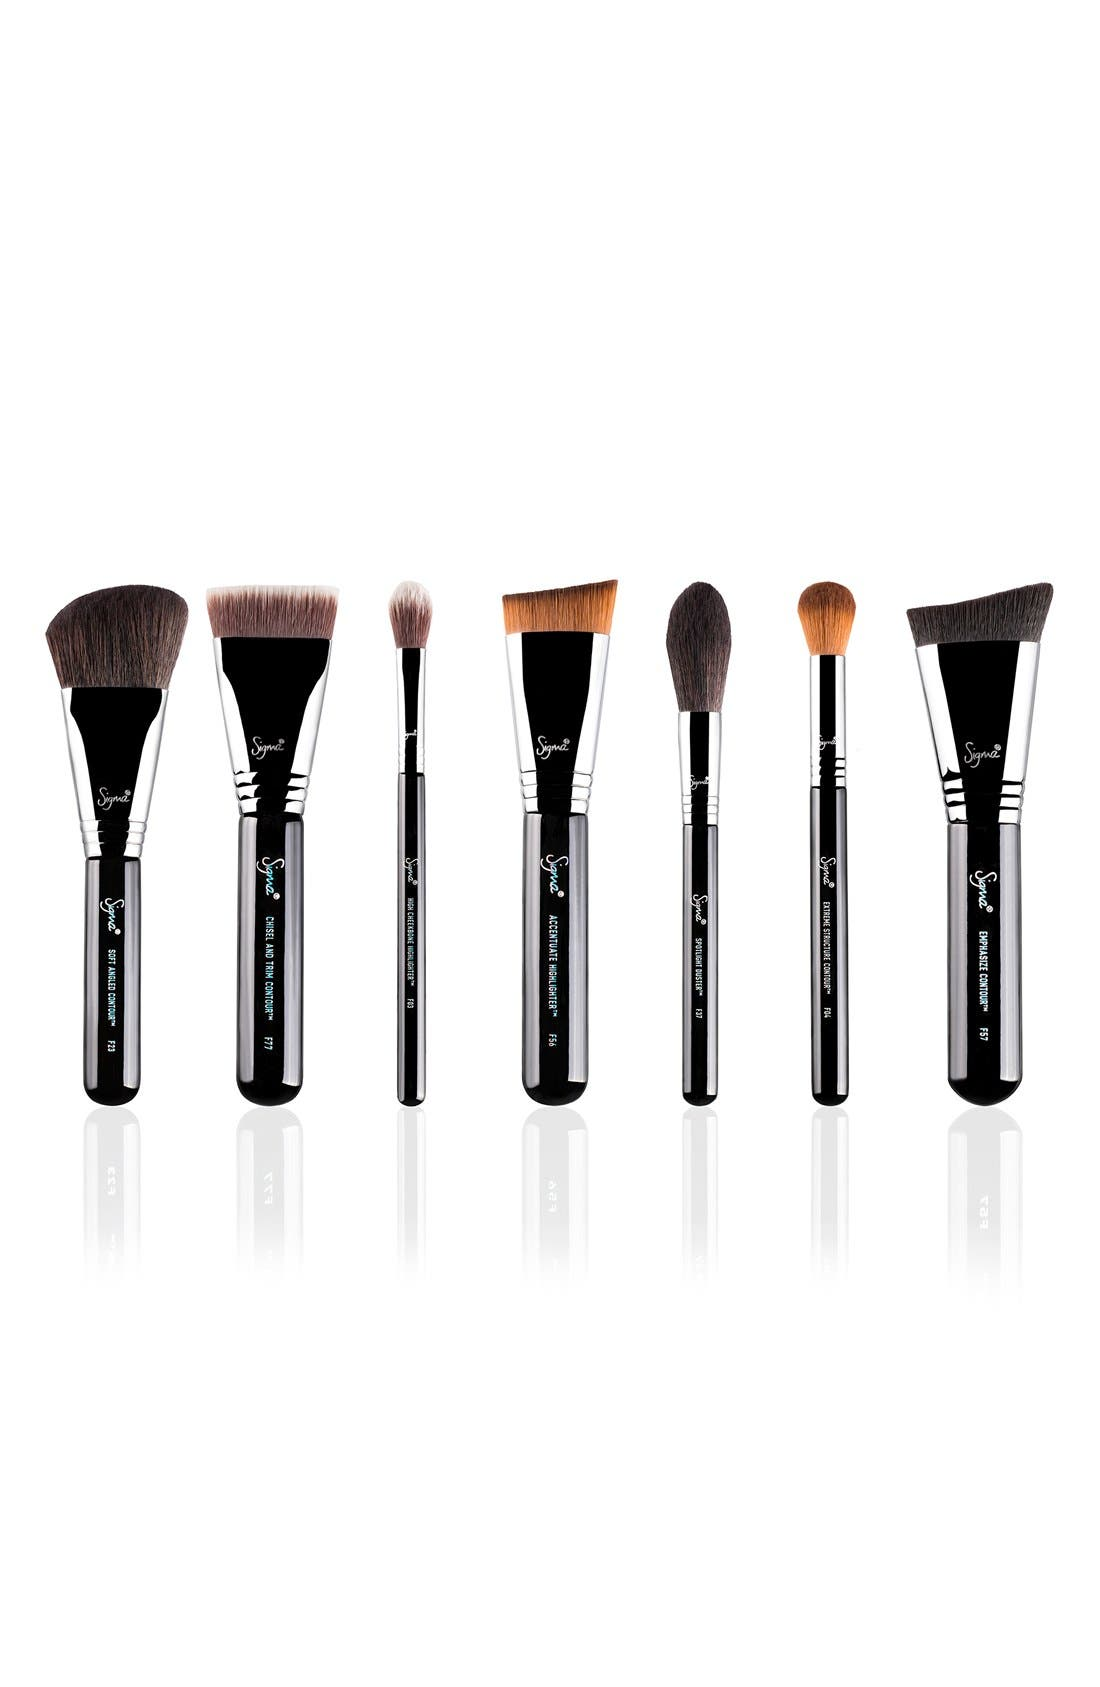 Complete Highlight & Contour Luxe Brush Set,                             Main thumbnail 1, color,                             000